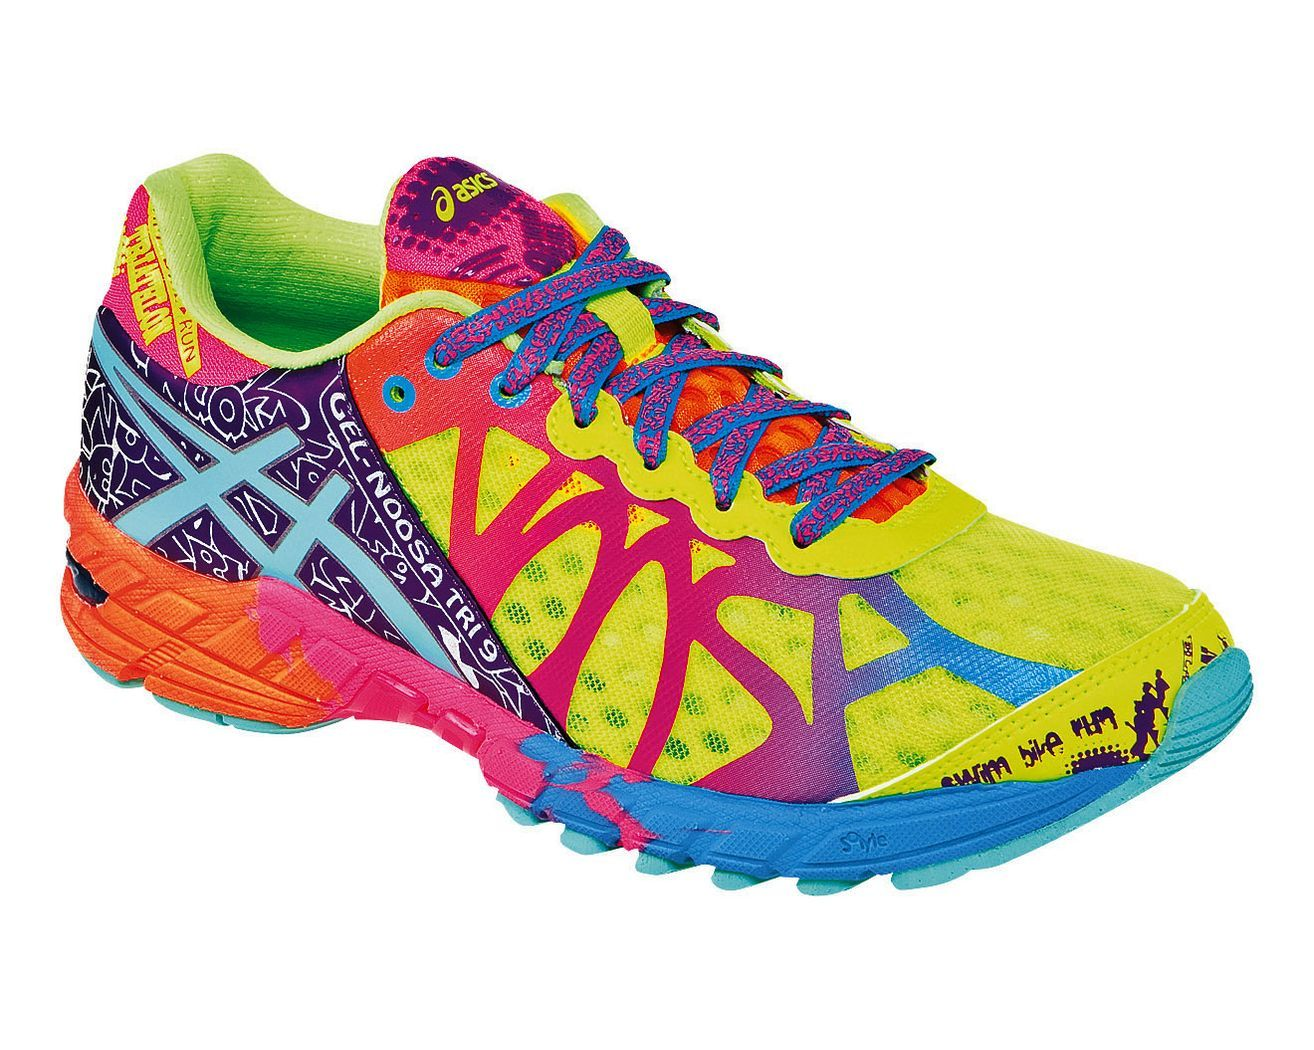 Womens ASICS GEL-Noosa Tri 9 Running Shoe at Road Runner Sports -  pre-ordered! 2486da99bc9e3